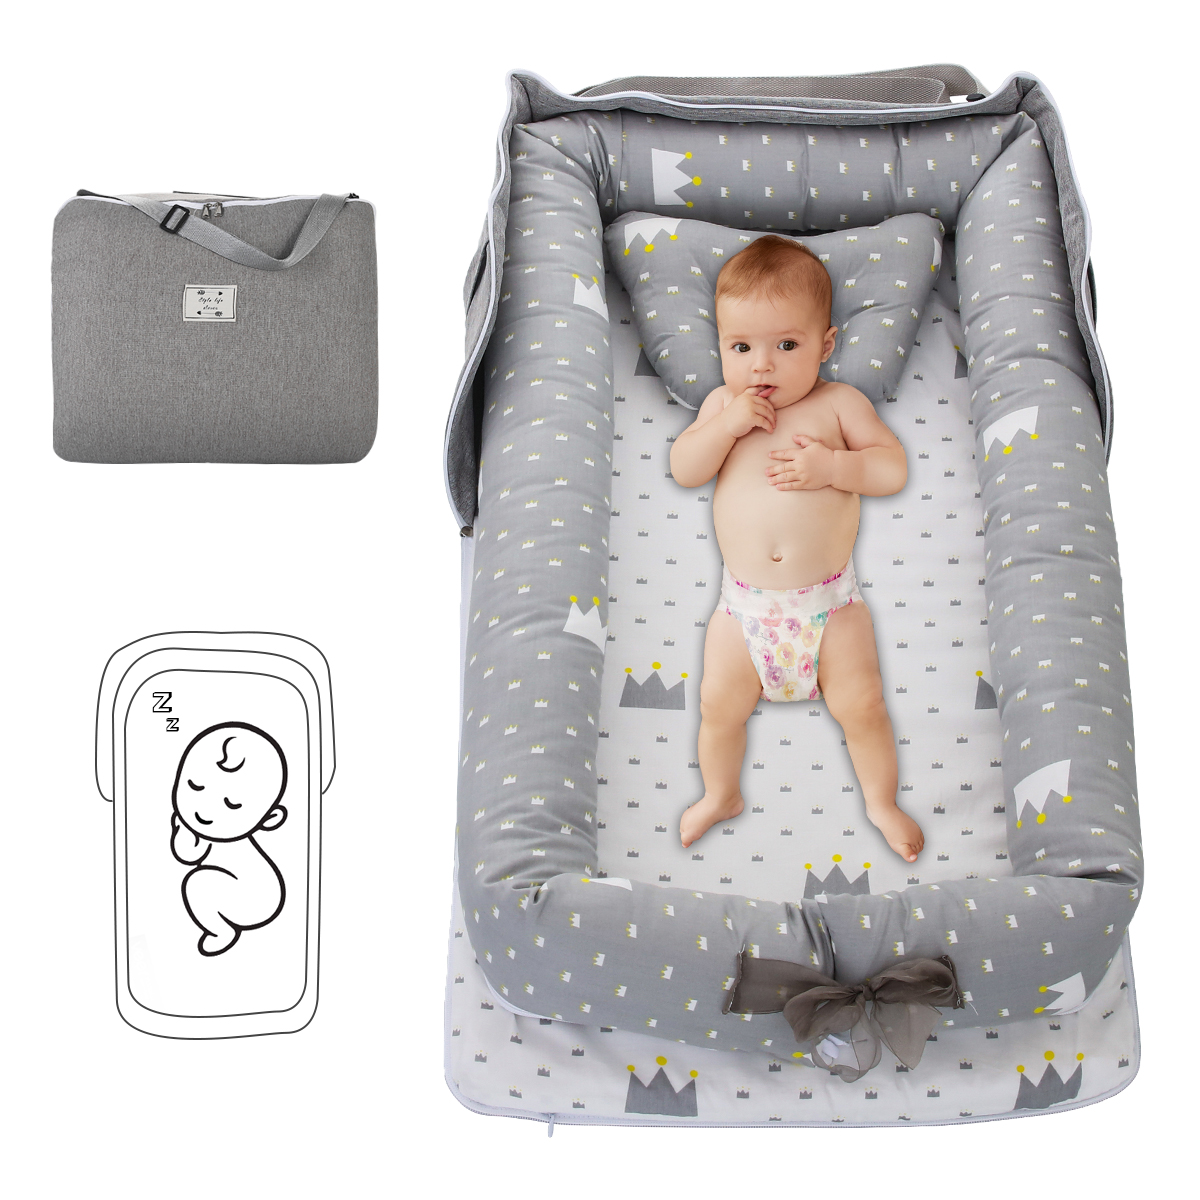 puseky Baby Bed Lounger Washable Portable Crib Baby Co Sleeping Baby Bassinet for Bedroom Travel Outdoor